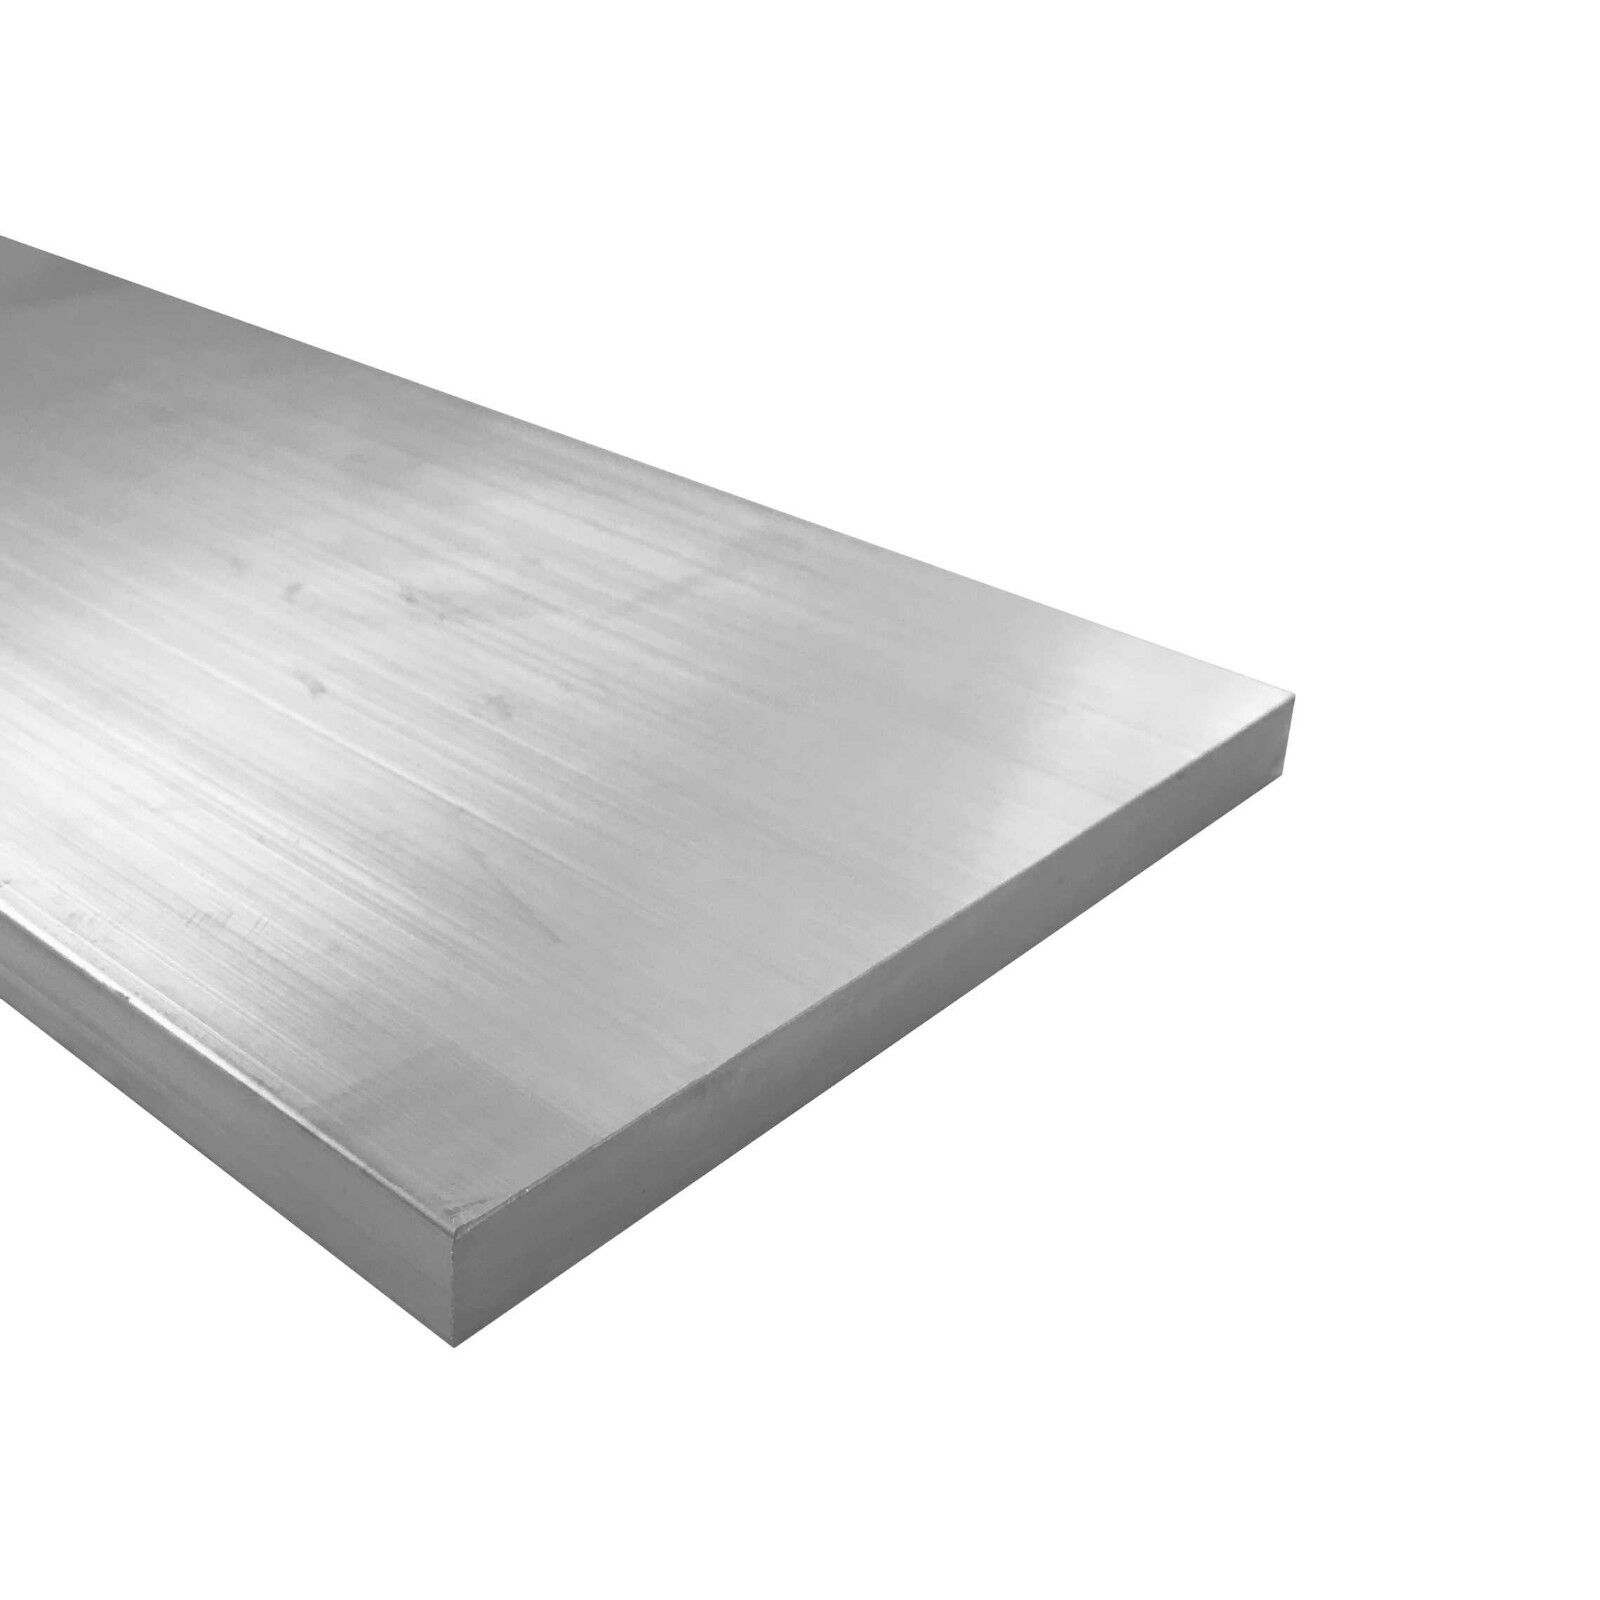 "T6511 Mill Stock 12/"" Length 6061 Plate 1//8/"" x 3/"" Aluminum Flat Bar"